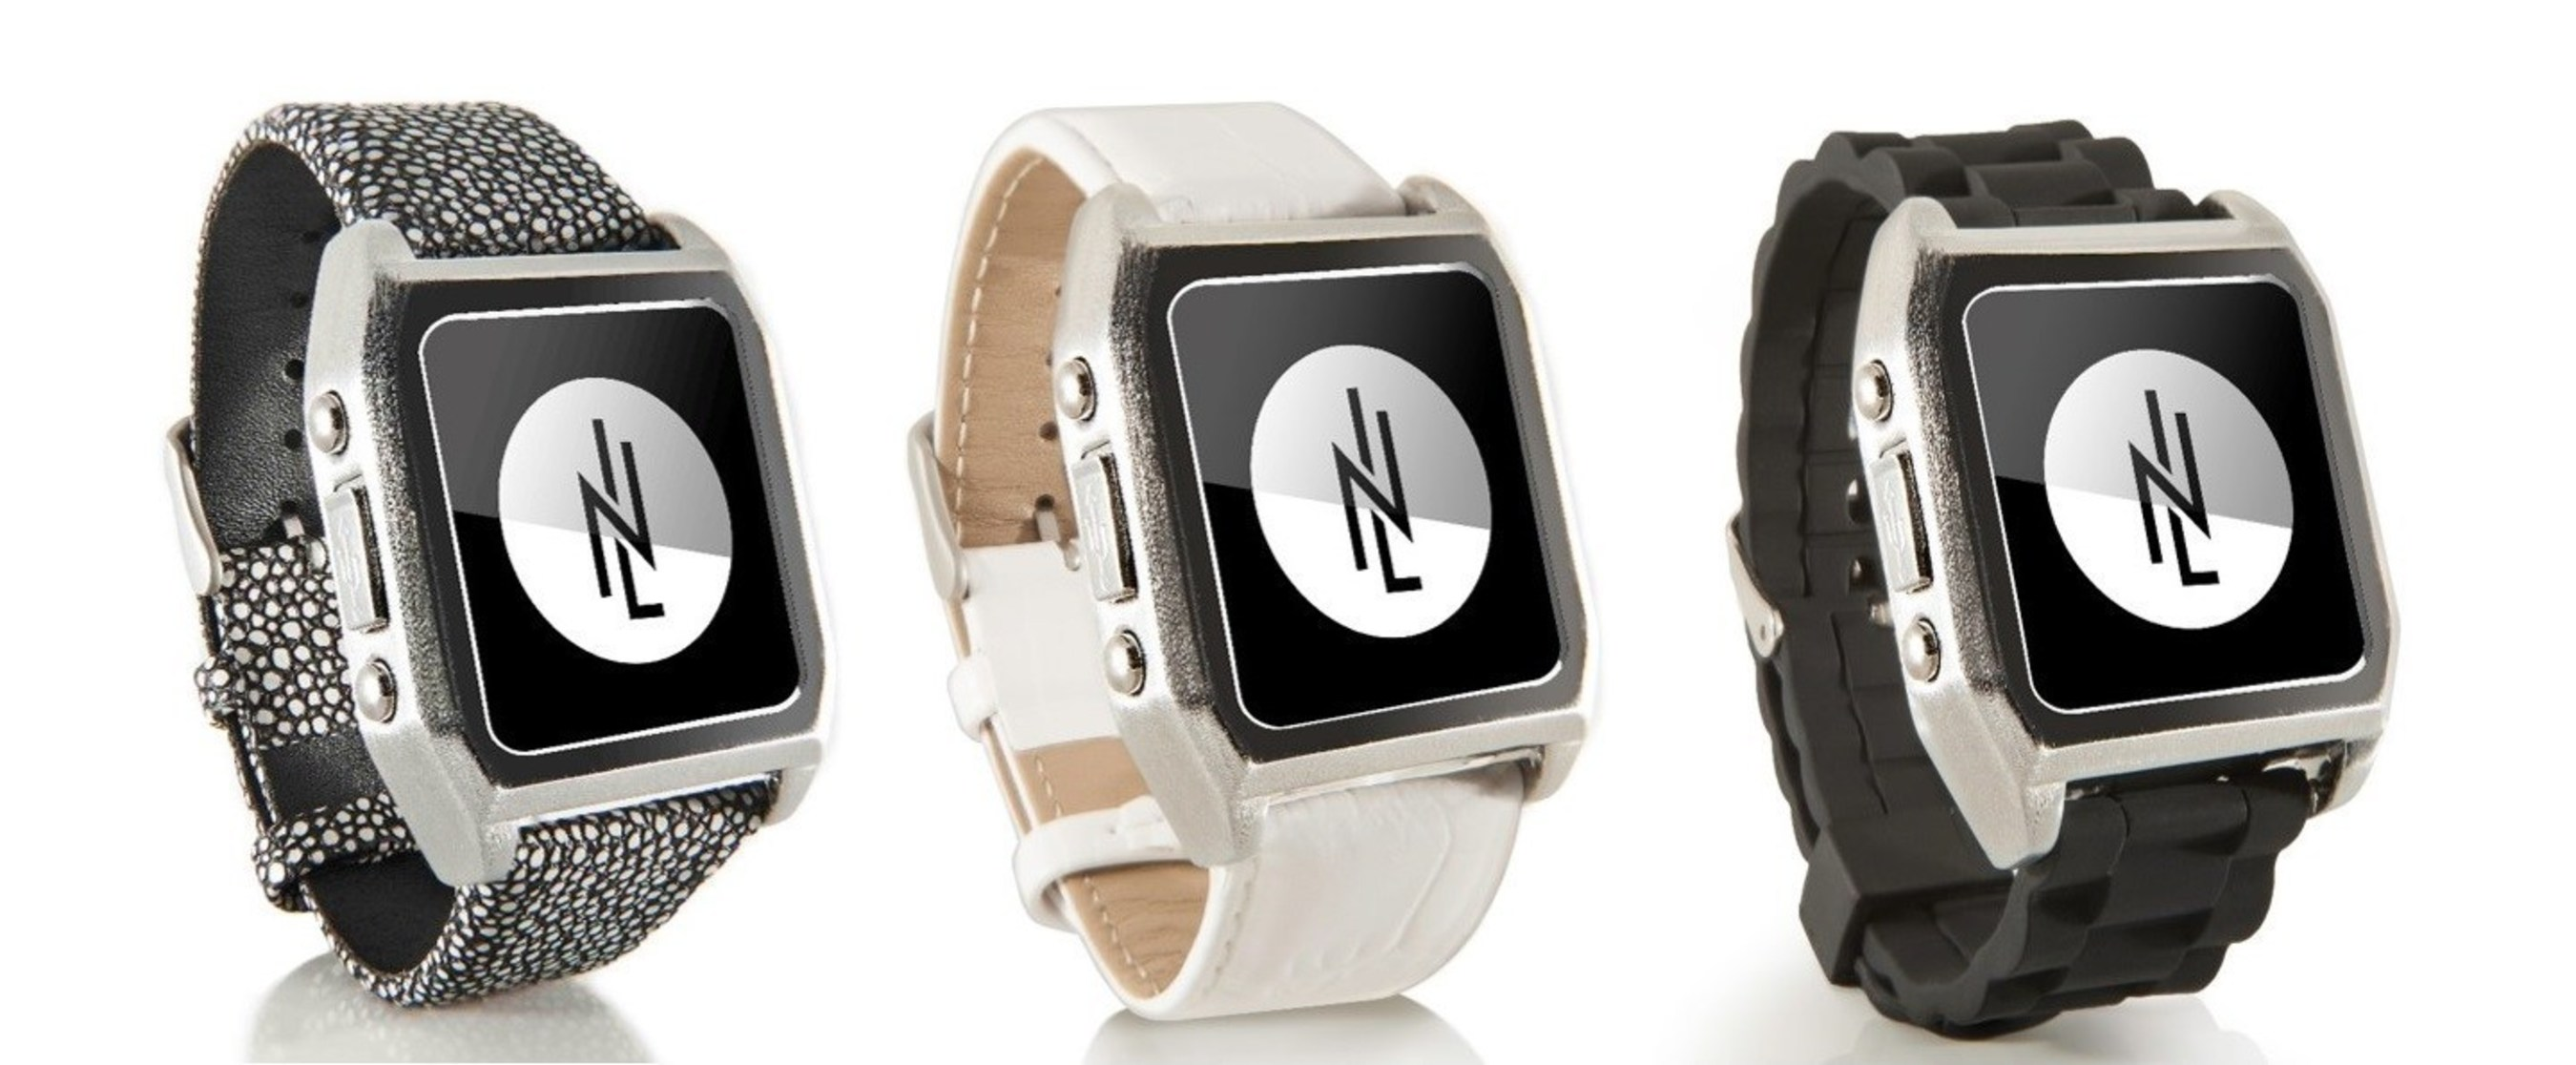 CASH Smartwatch, the first and only wearable financial device available at http://cashsmartwatch.com.